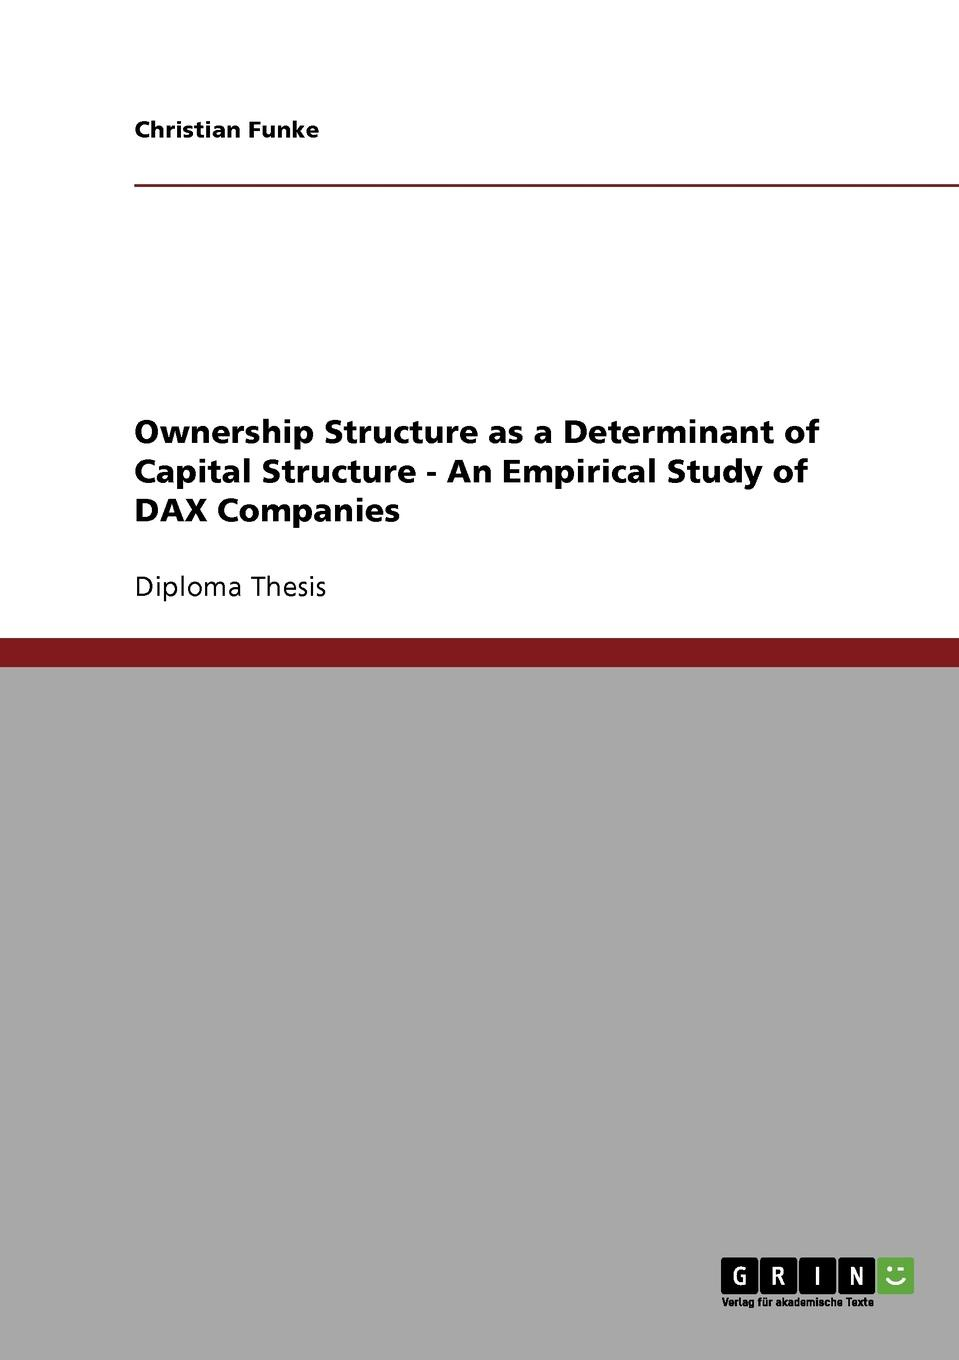 Christian Funke Ownership Structure as a Determinant of Capital Structure - An Empirical Study of DAX Companies gerald s martin capital structure and corporate financing decisions theory evidence and practice